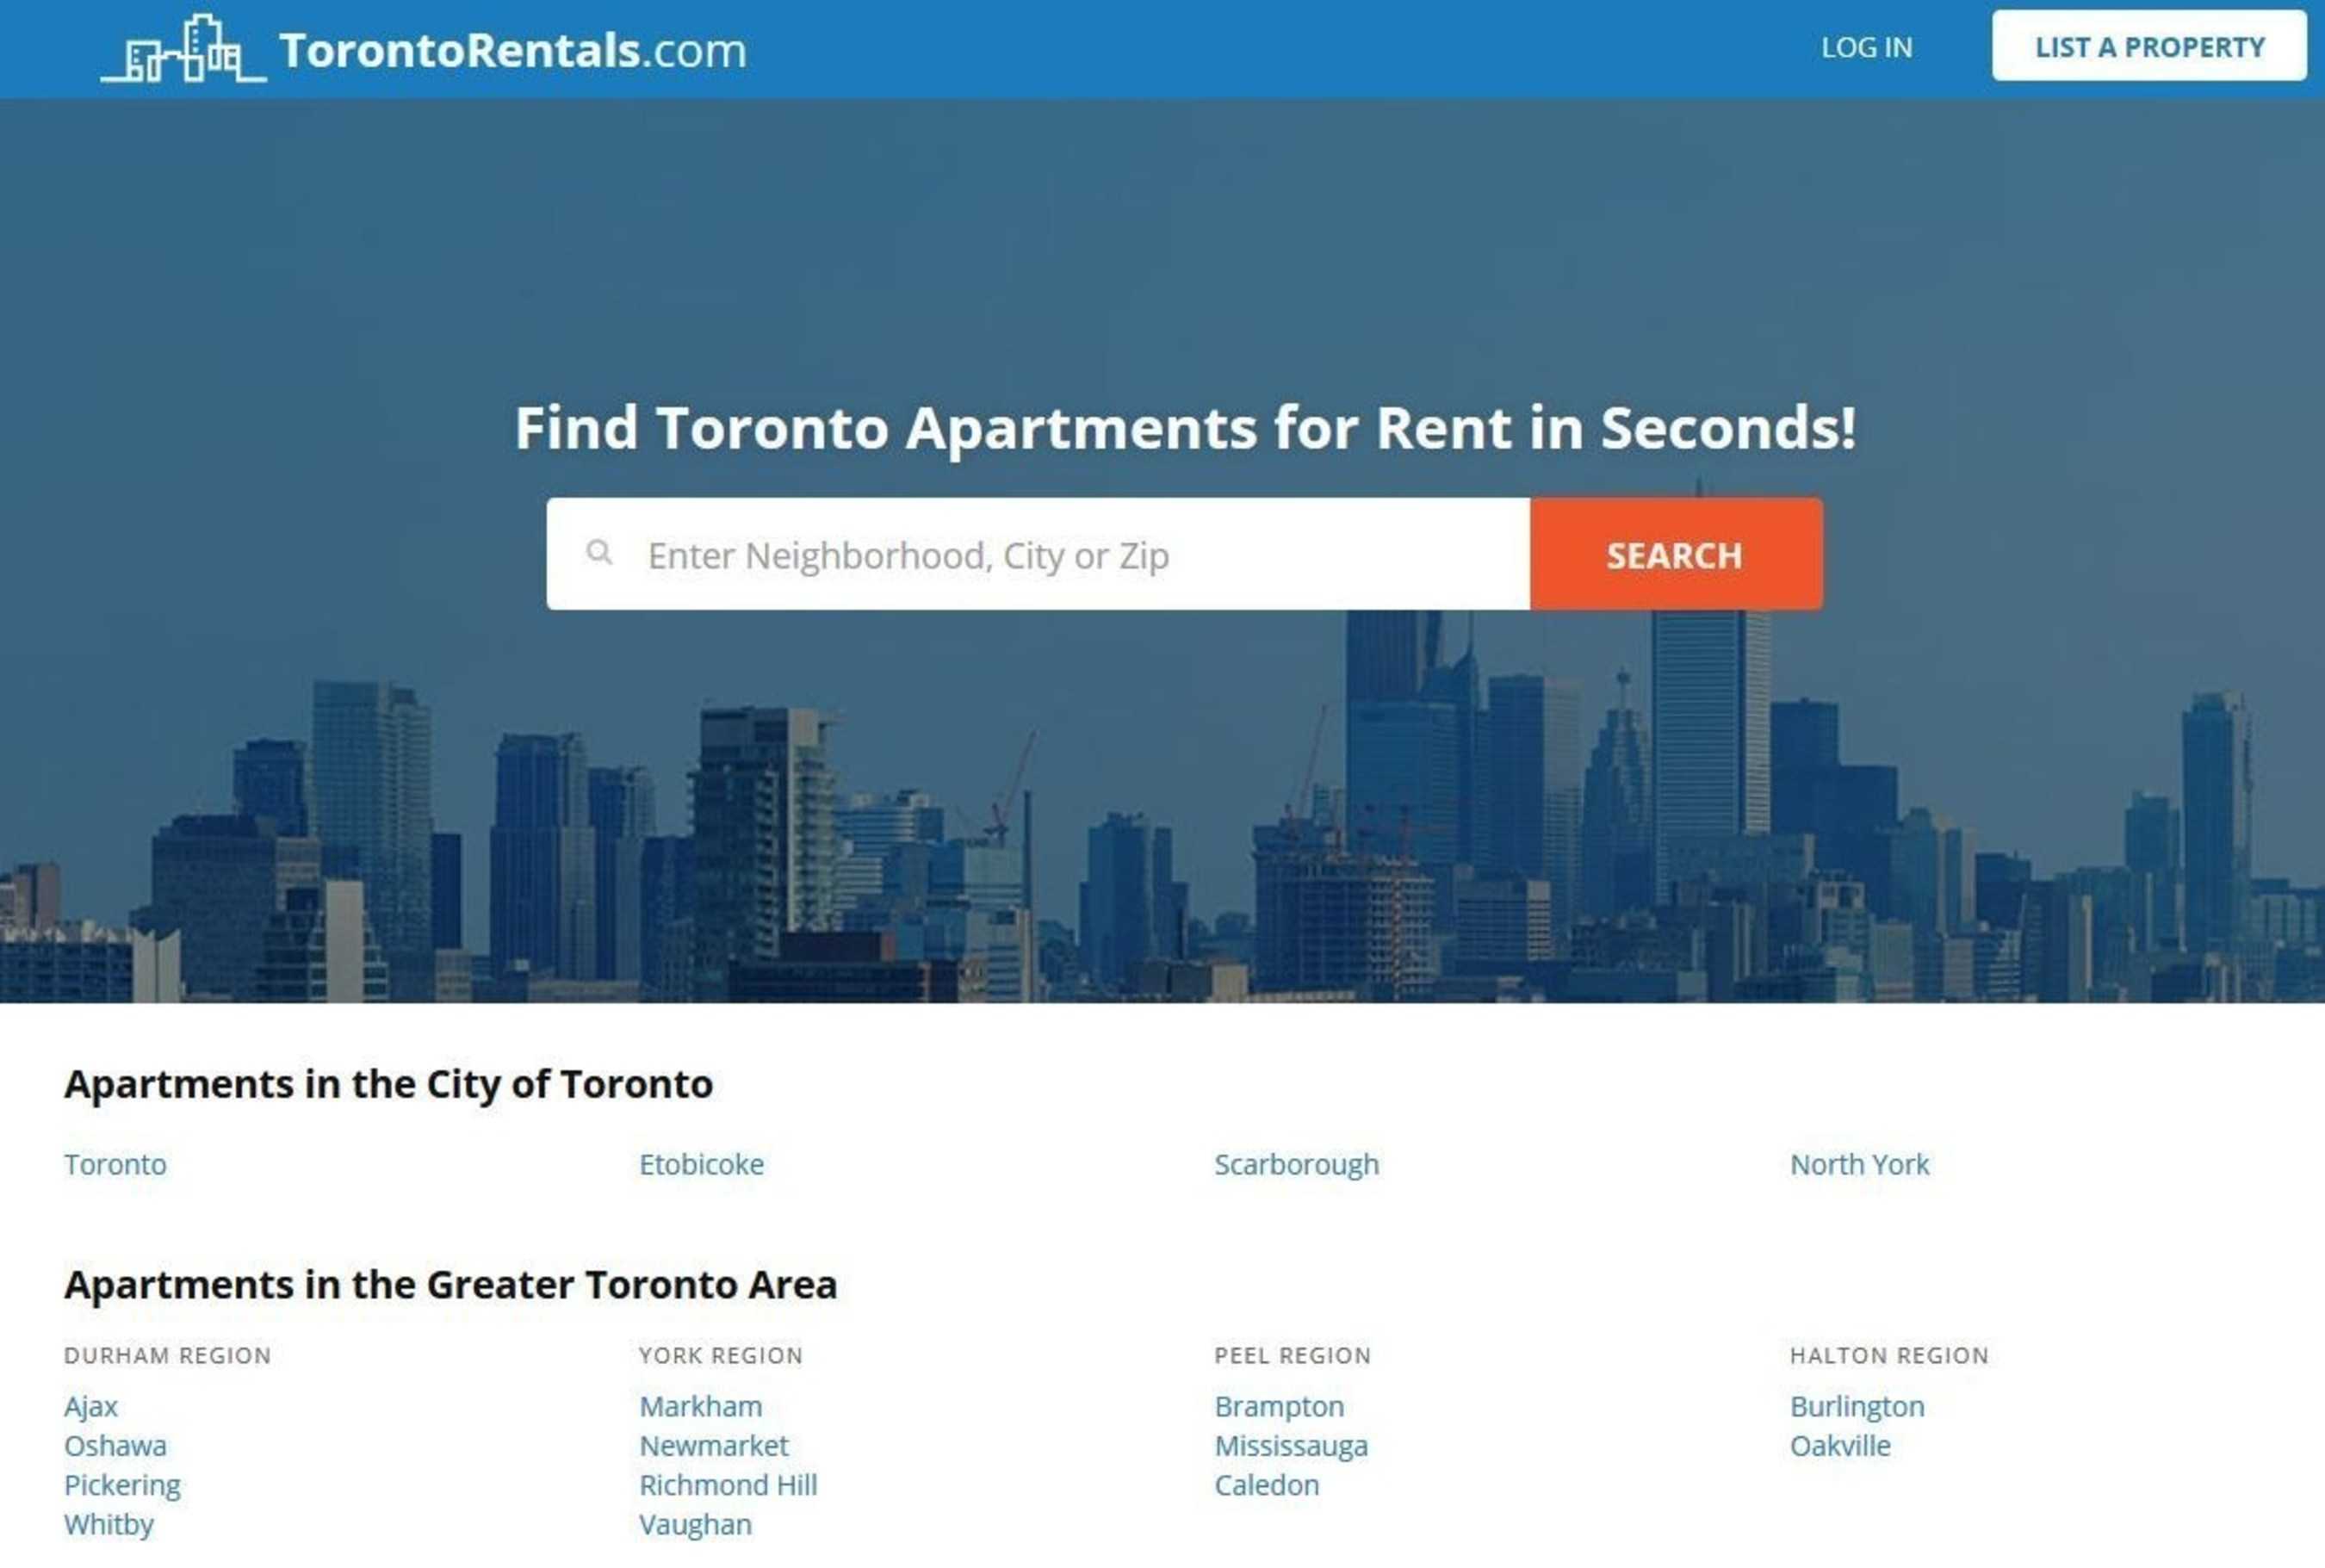 TorontoRentals.com Relaunches Website in Celebration of 20 Year Anniversary